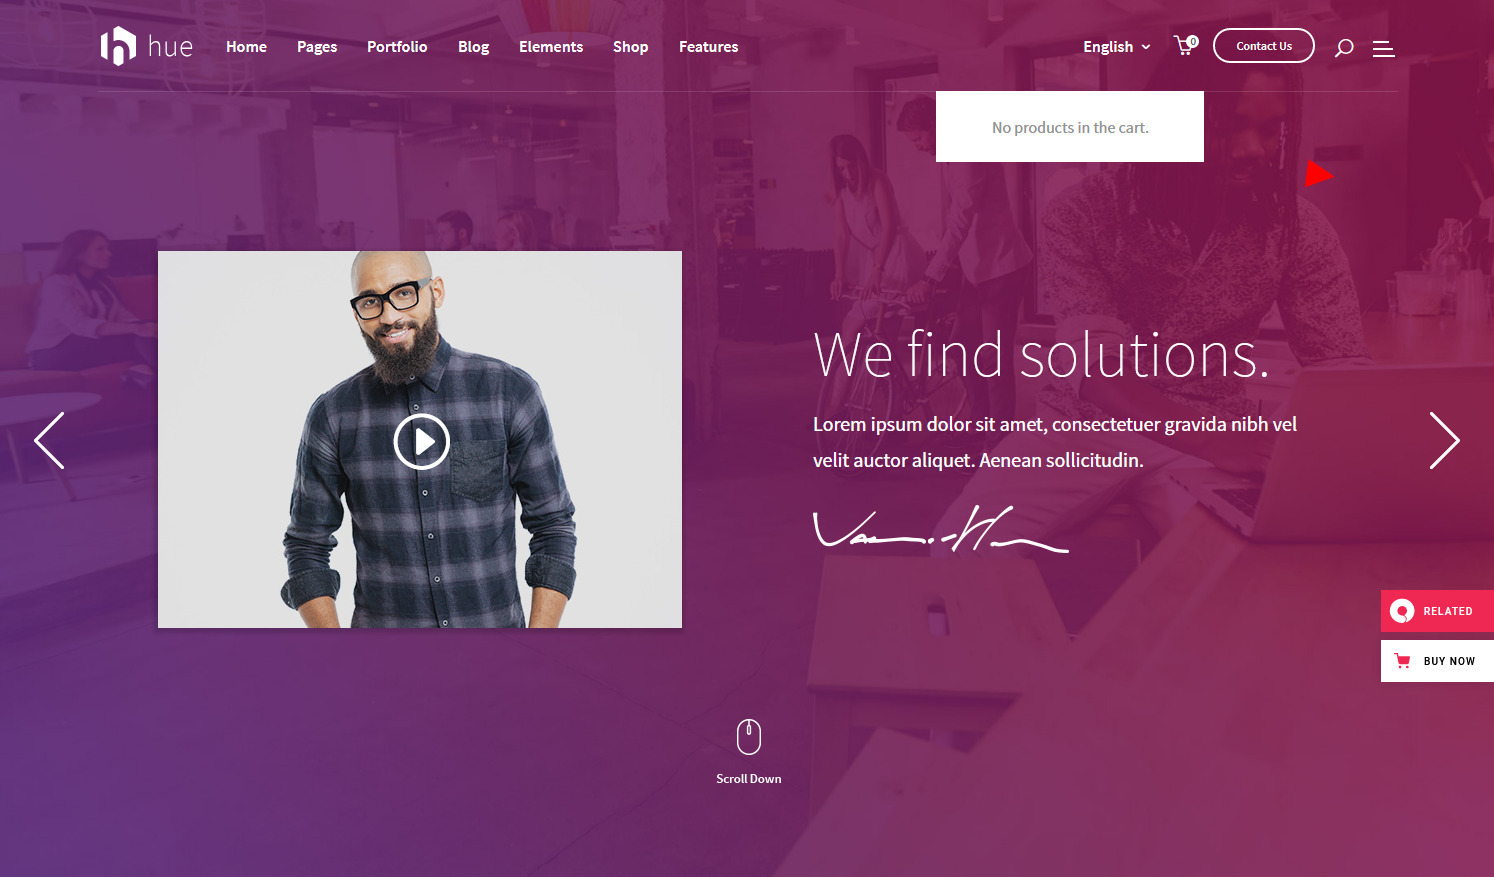 Hue WordPress Theme for Landing Pages